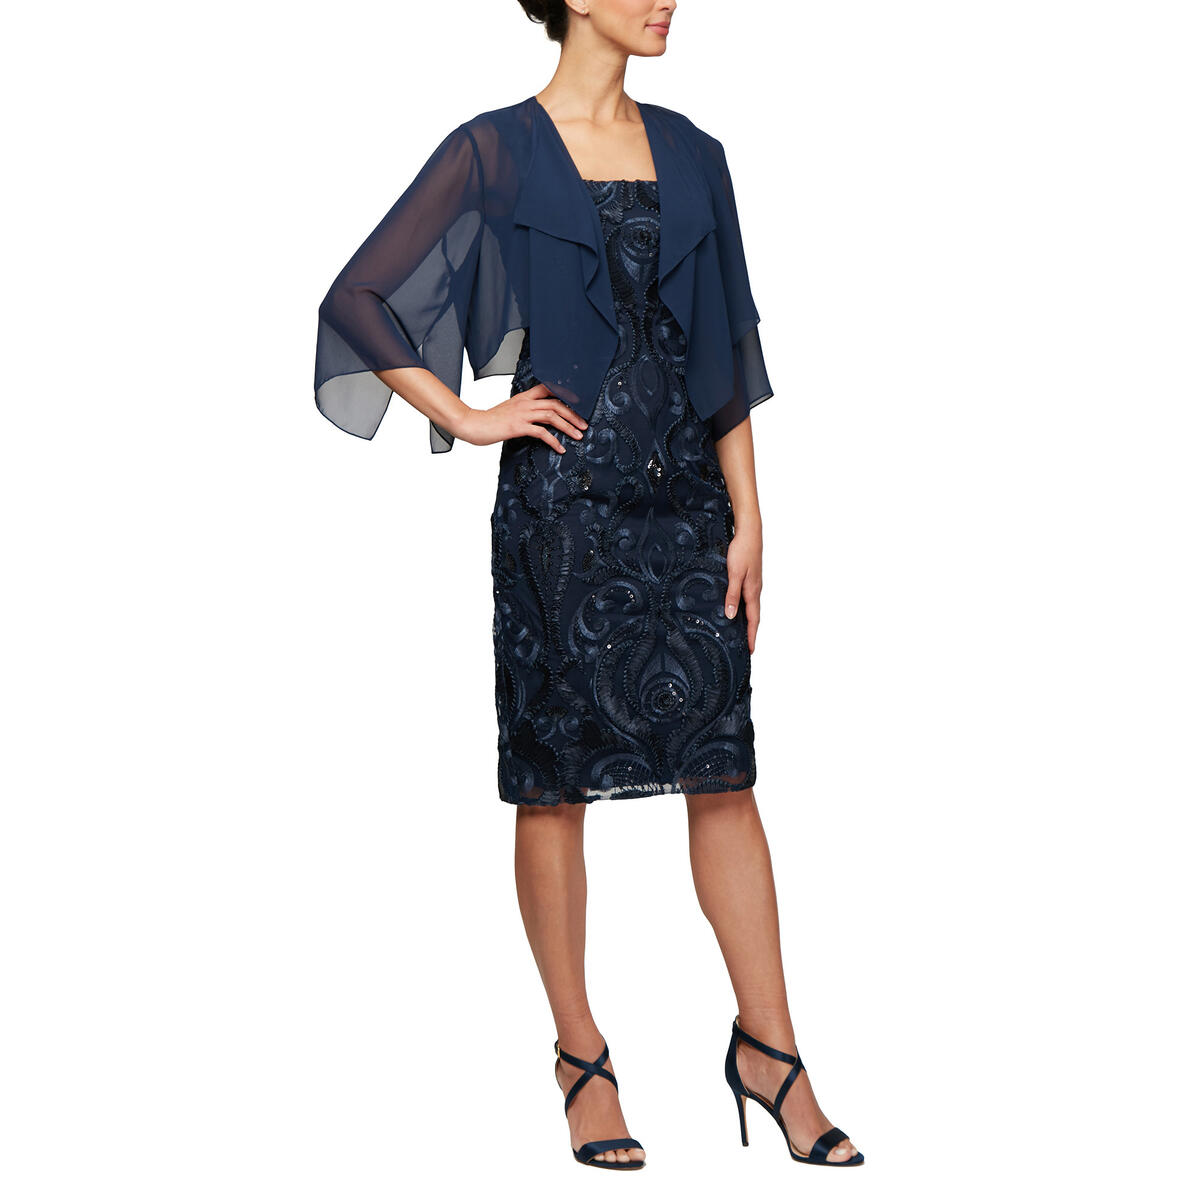 ALEX APPAREL GROUP INC - 2 Piece Sequin Dress/Chiffon Jacket